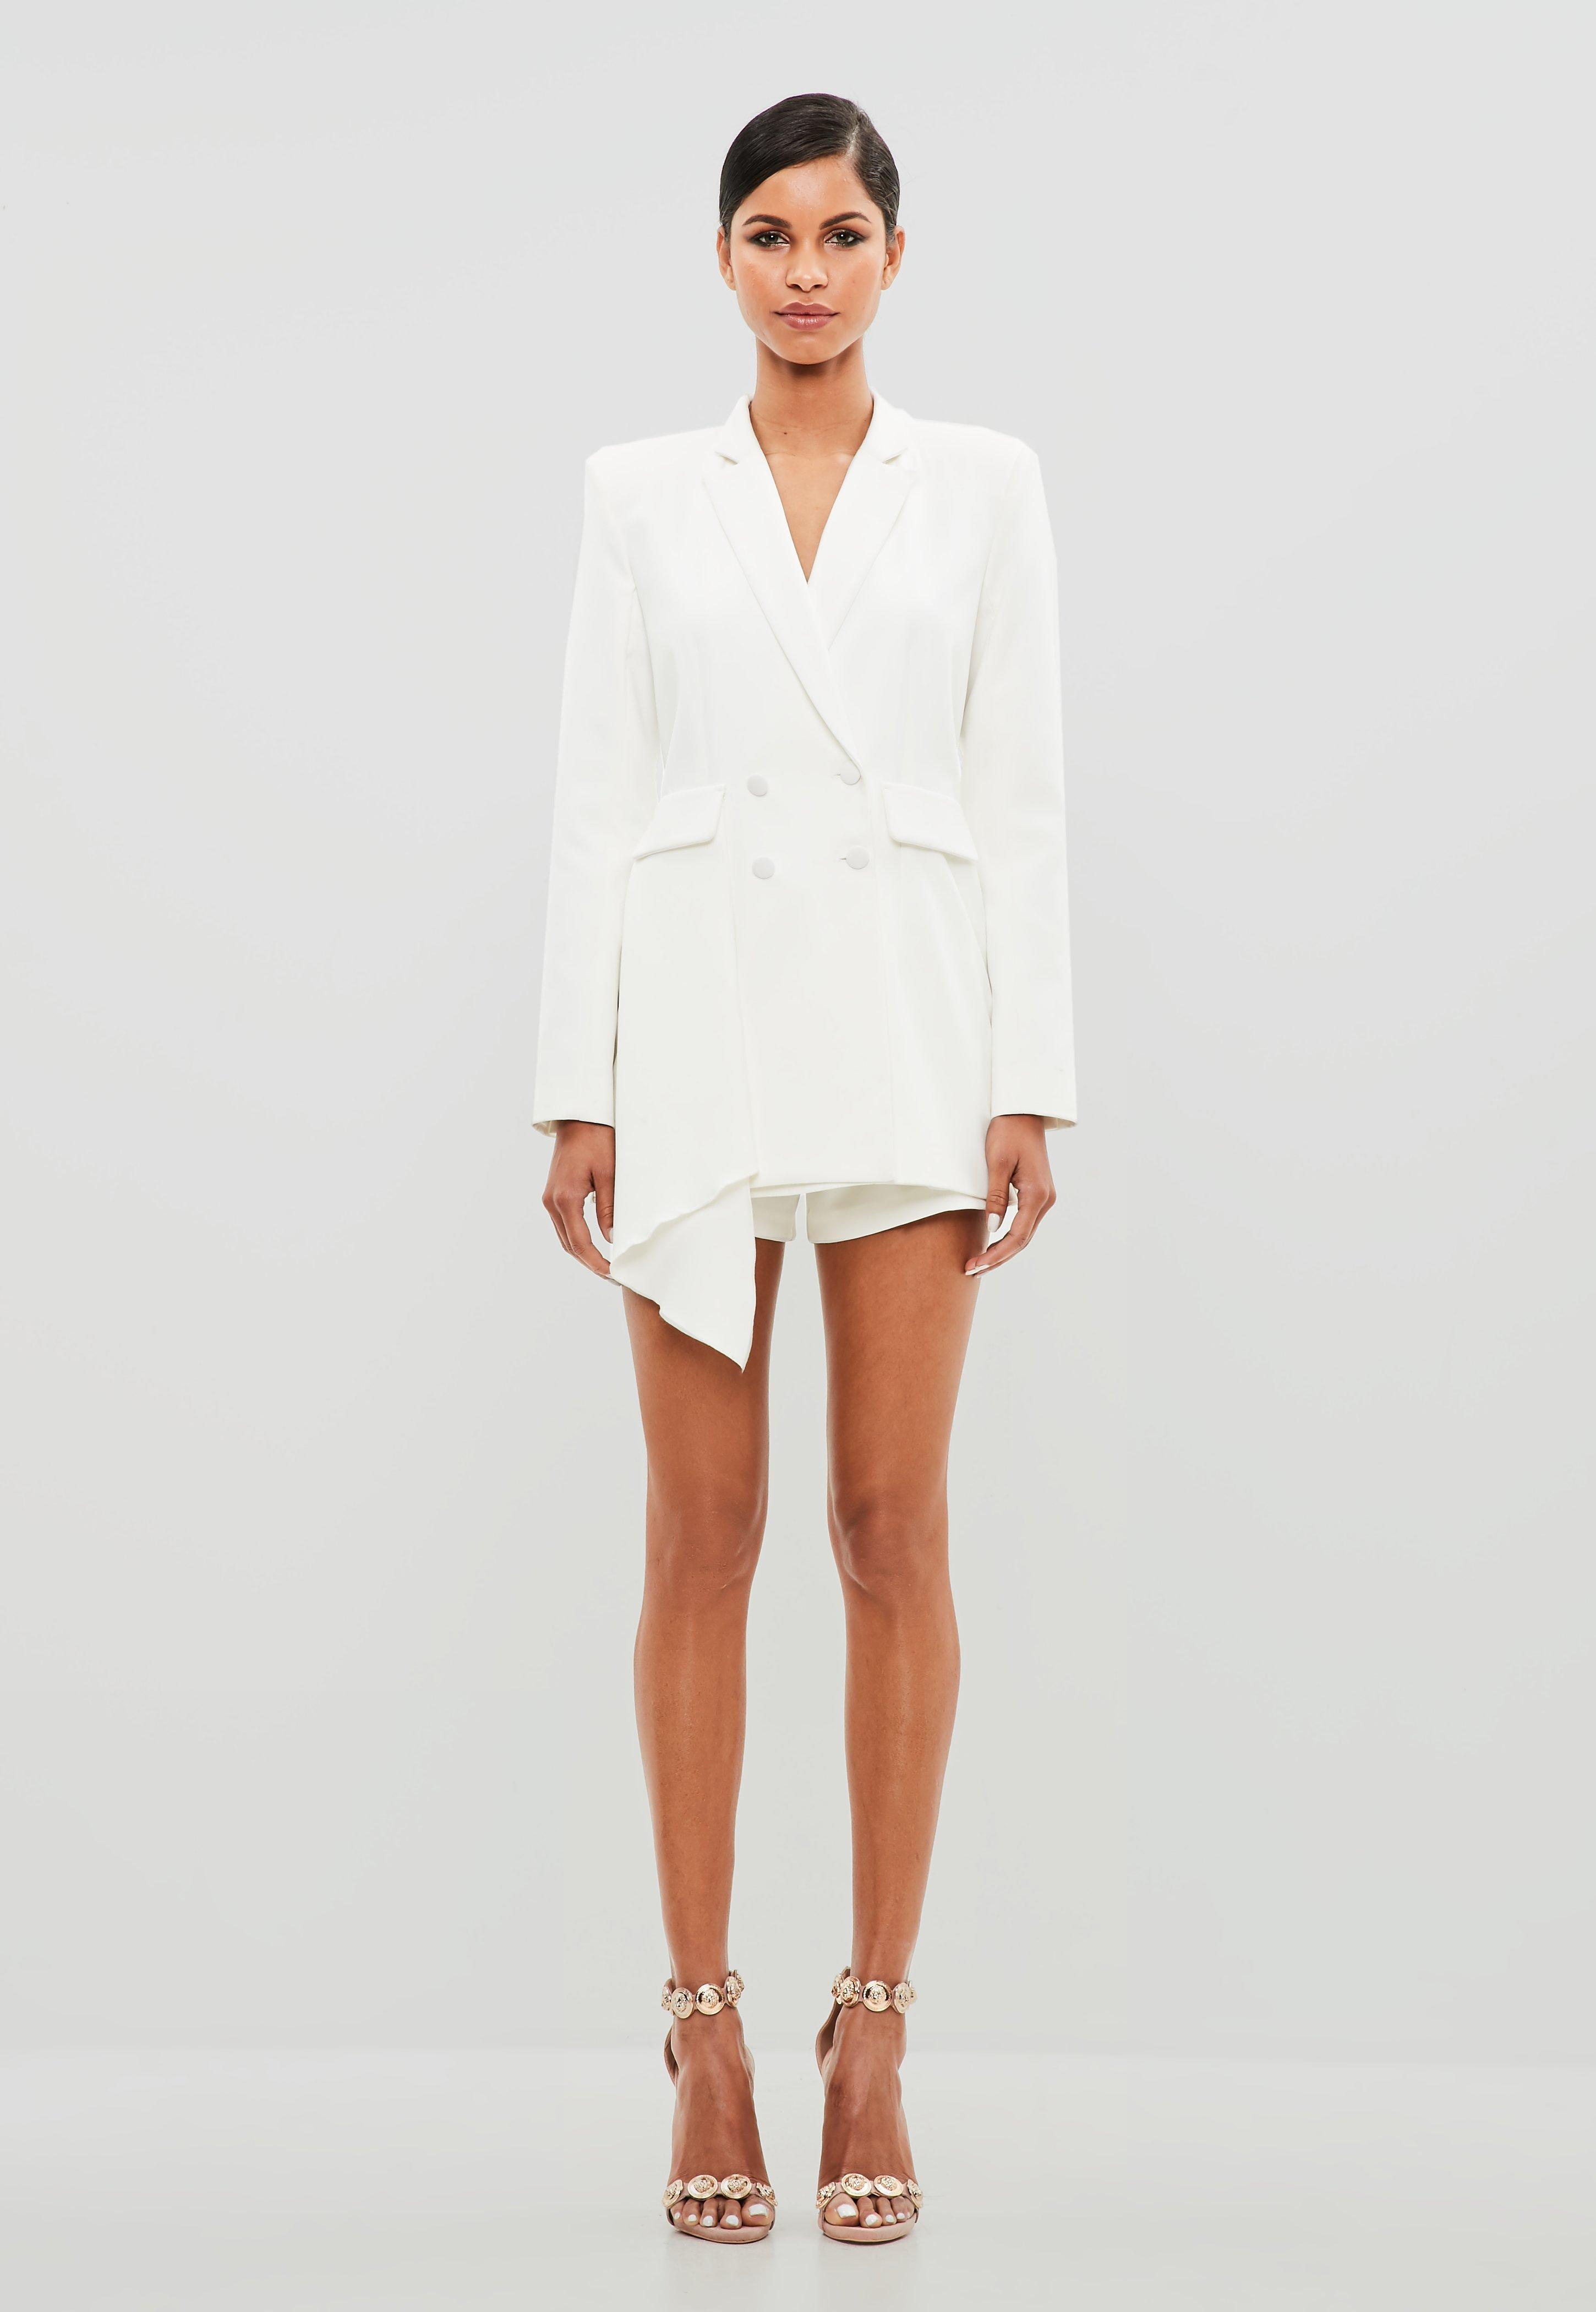 d8b89e64c9a Lyst - Missguided Peace + Love White Tuxedo Blazer Playsuit in White